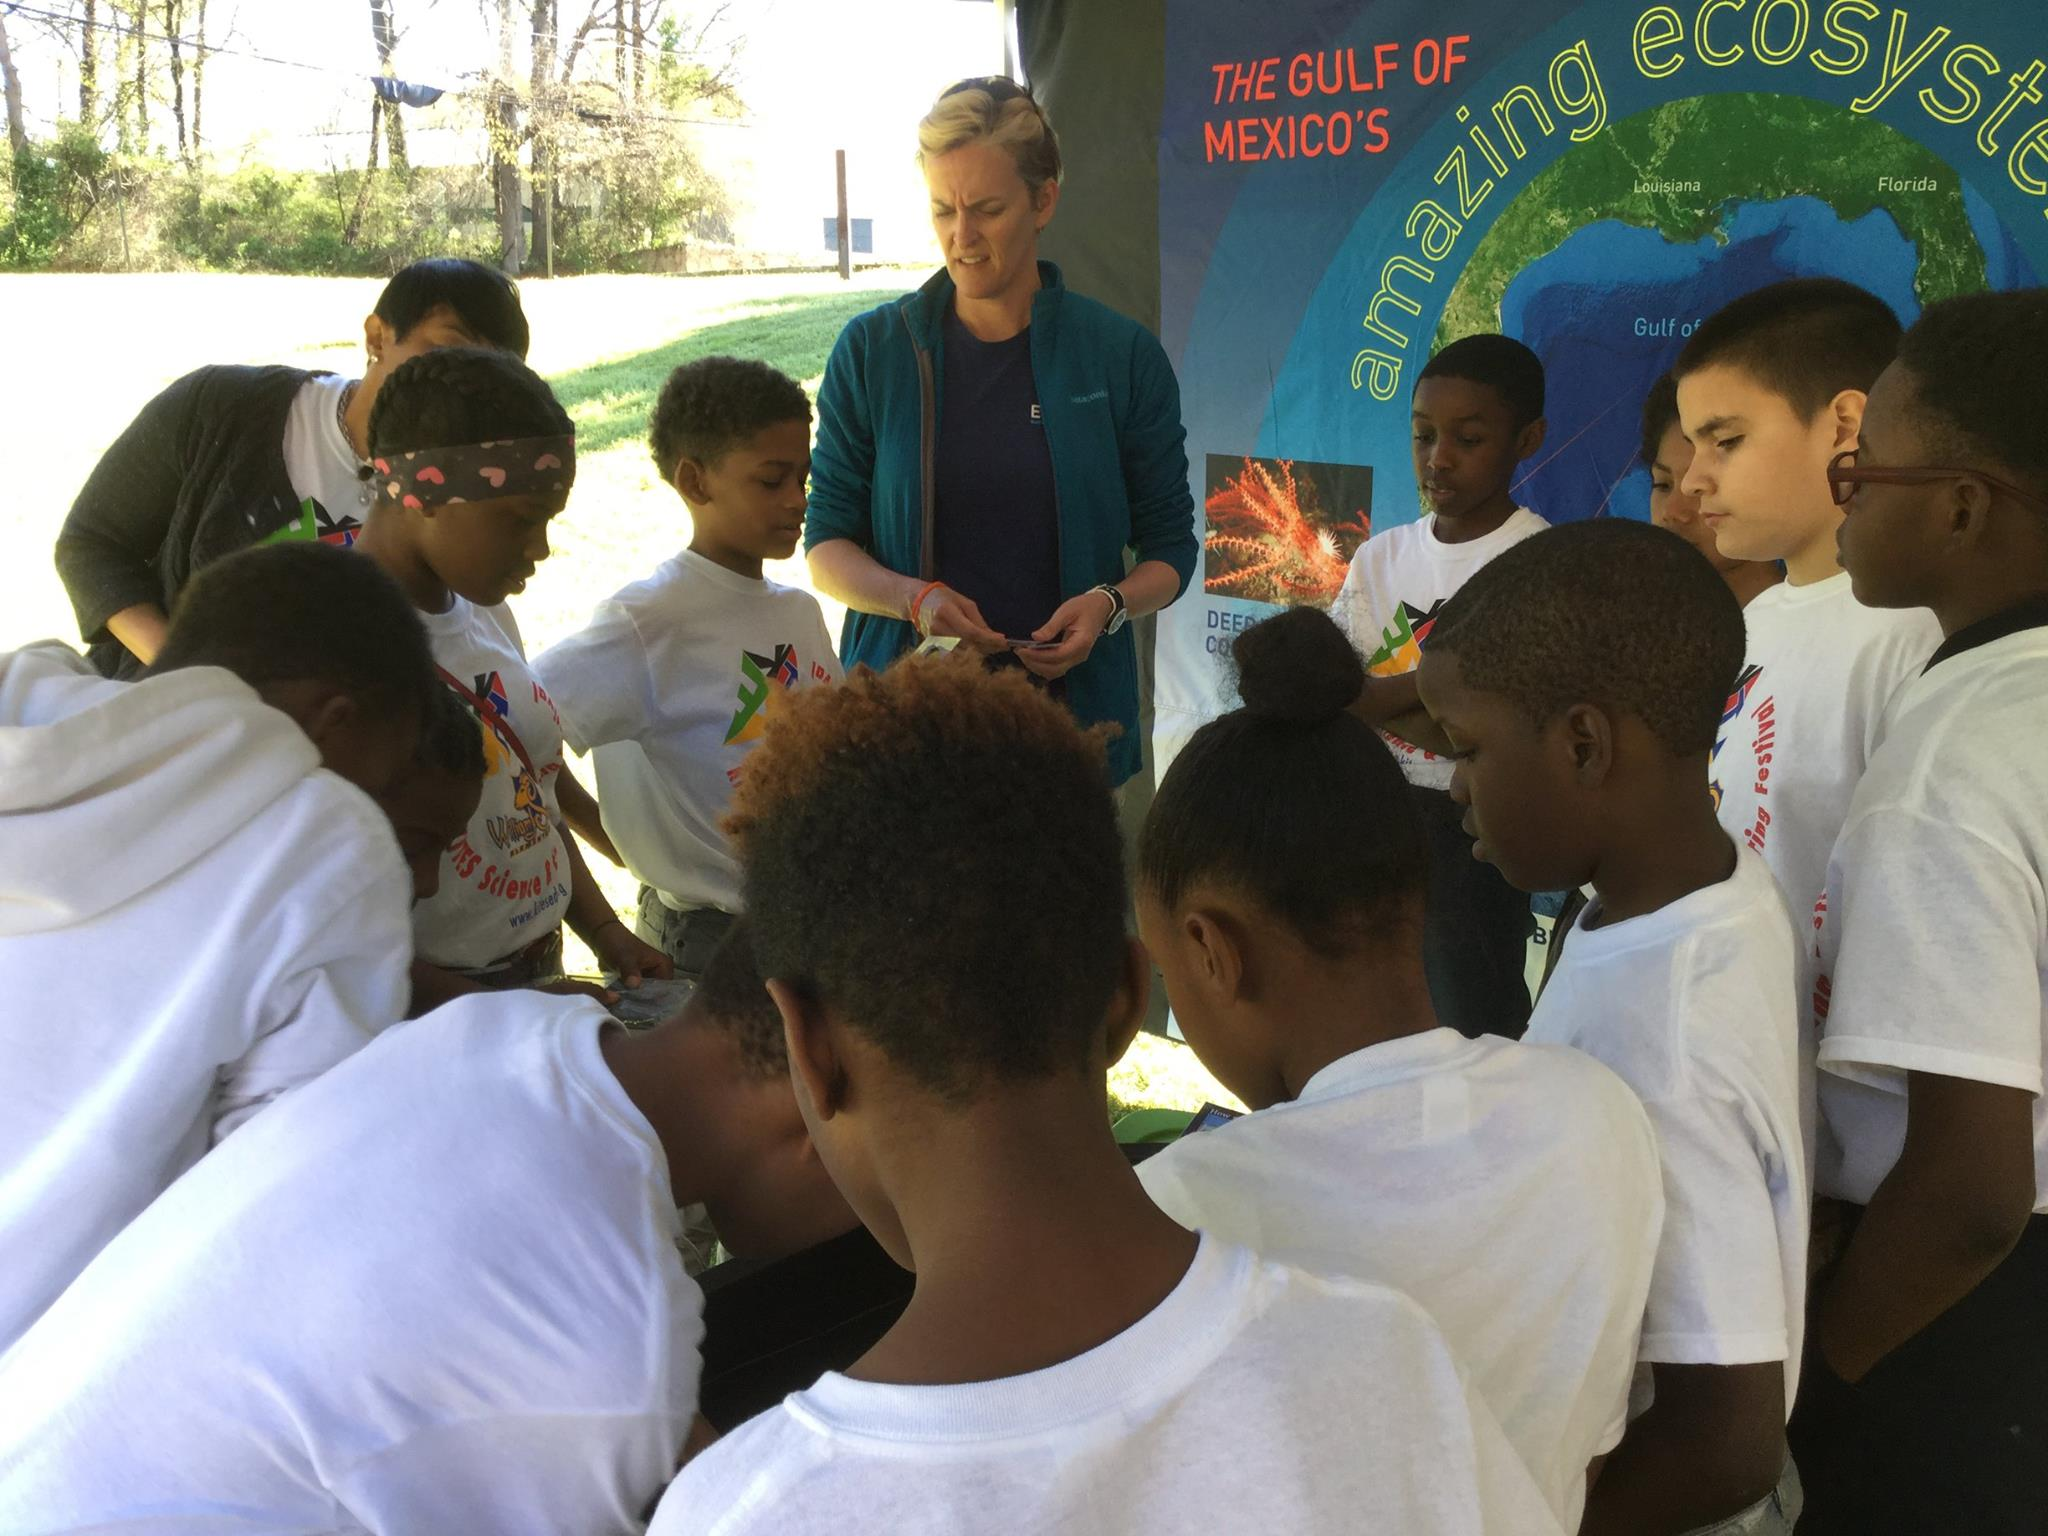 <div style='color:#000000;'><br /><br /><h2>2017 KITES Festival. ECOGIG brought the Ocean Discovery Zone to approximately 200 students at Scott Elementary in Atlanta, GA. This was part of a larger event called the KITES (Kids Interested in Technology, Engineering and Science) festival. </h2>(c) ECOGIG</div>